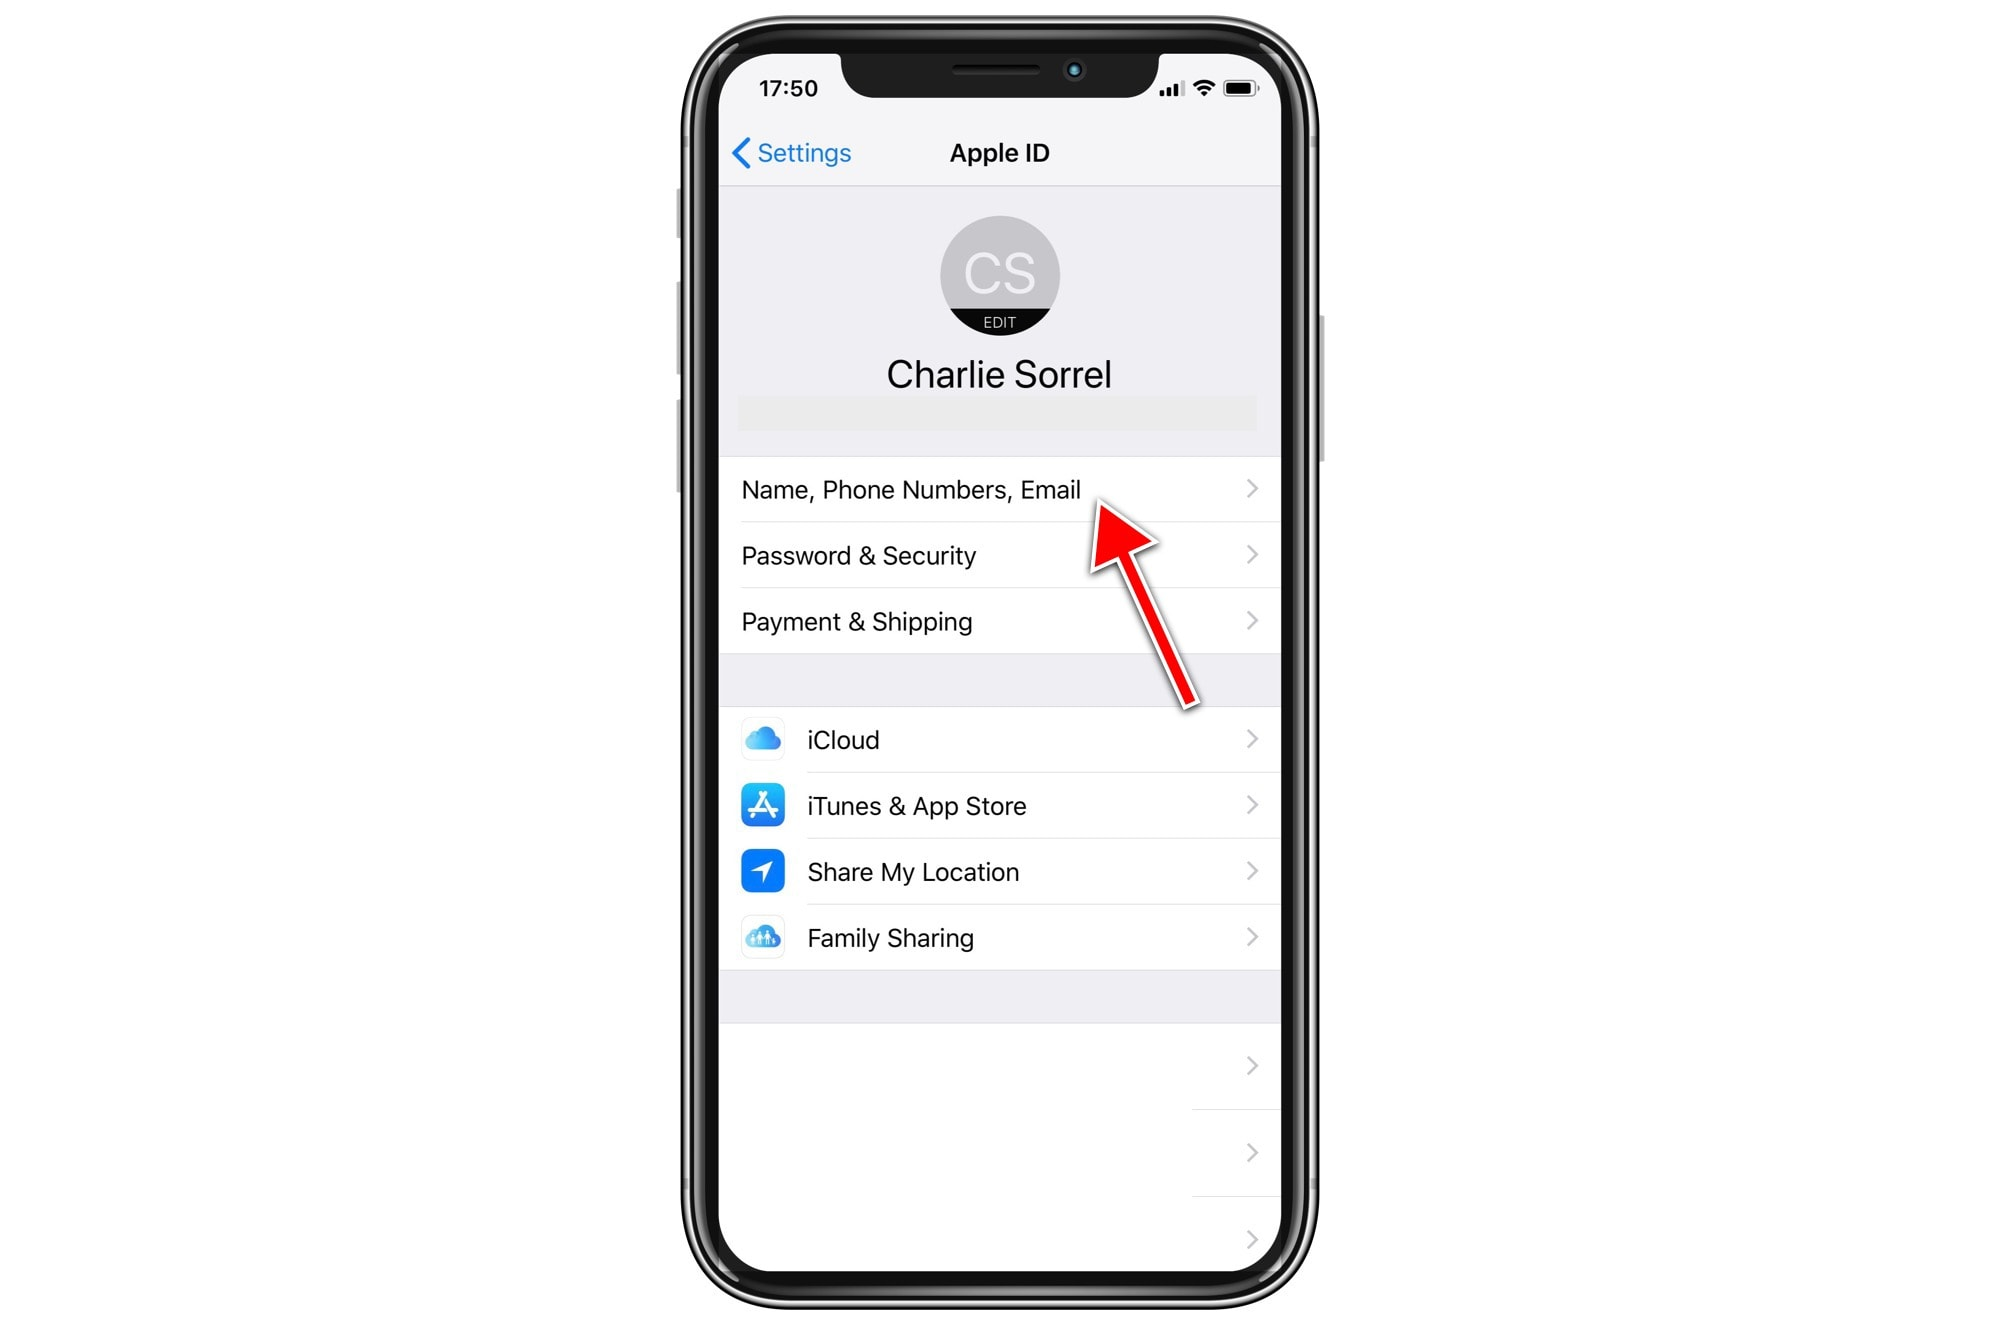 Stop Apple's spam notifications with this hidden setting